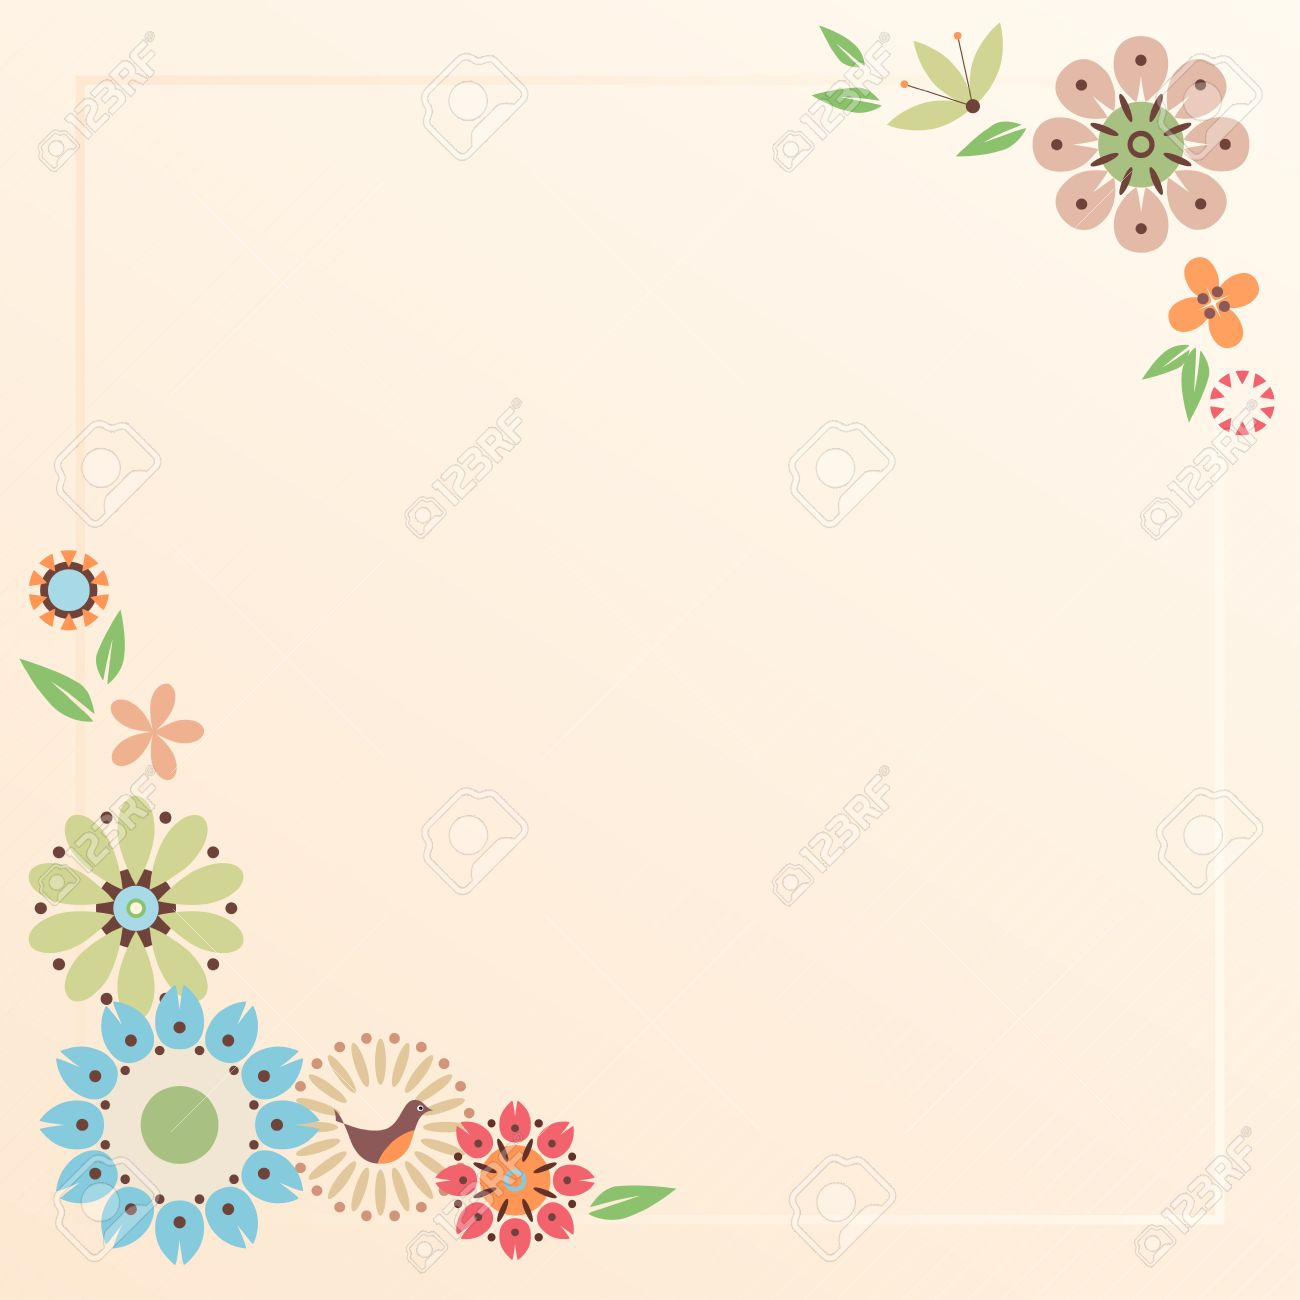 Floral card with decorative flowers and bird  Template for scrap